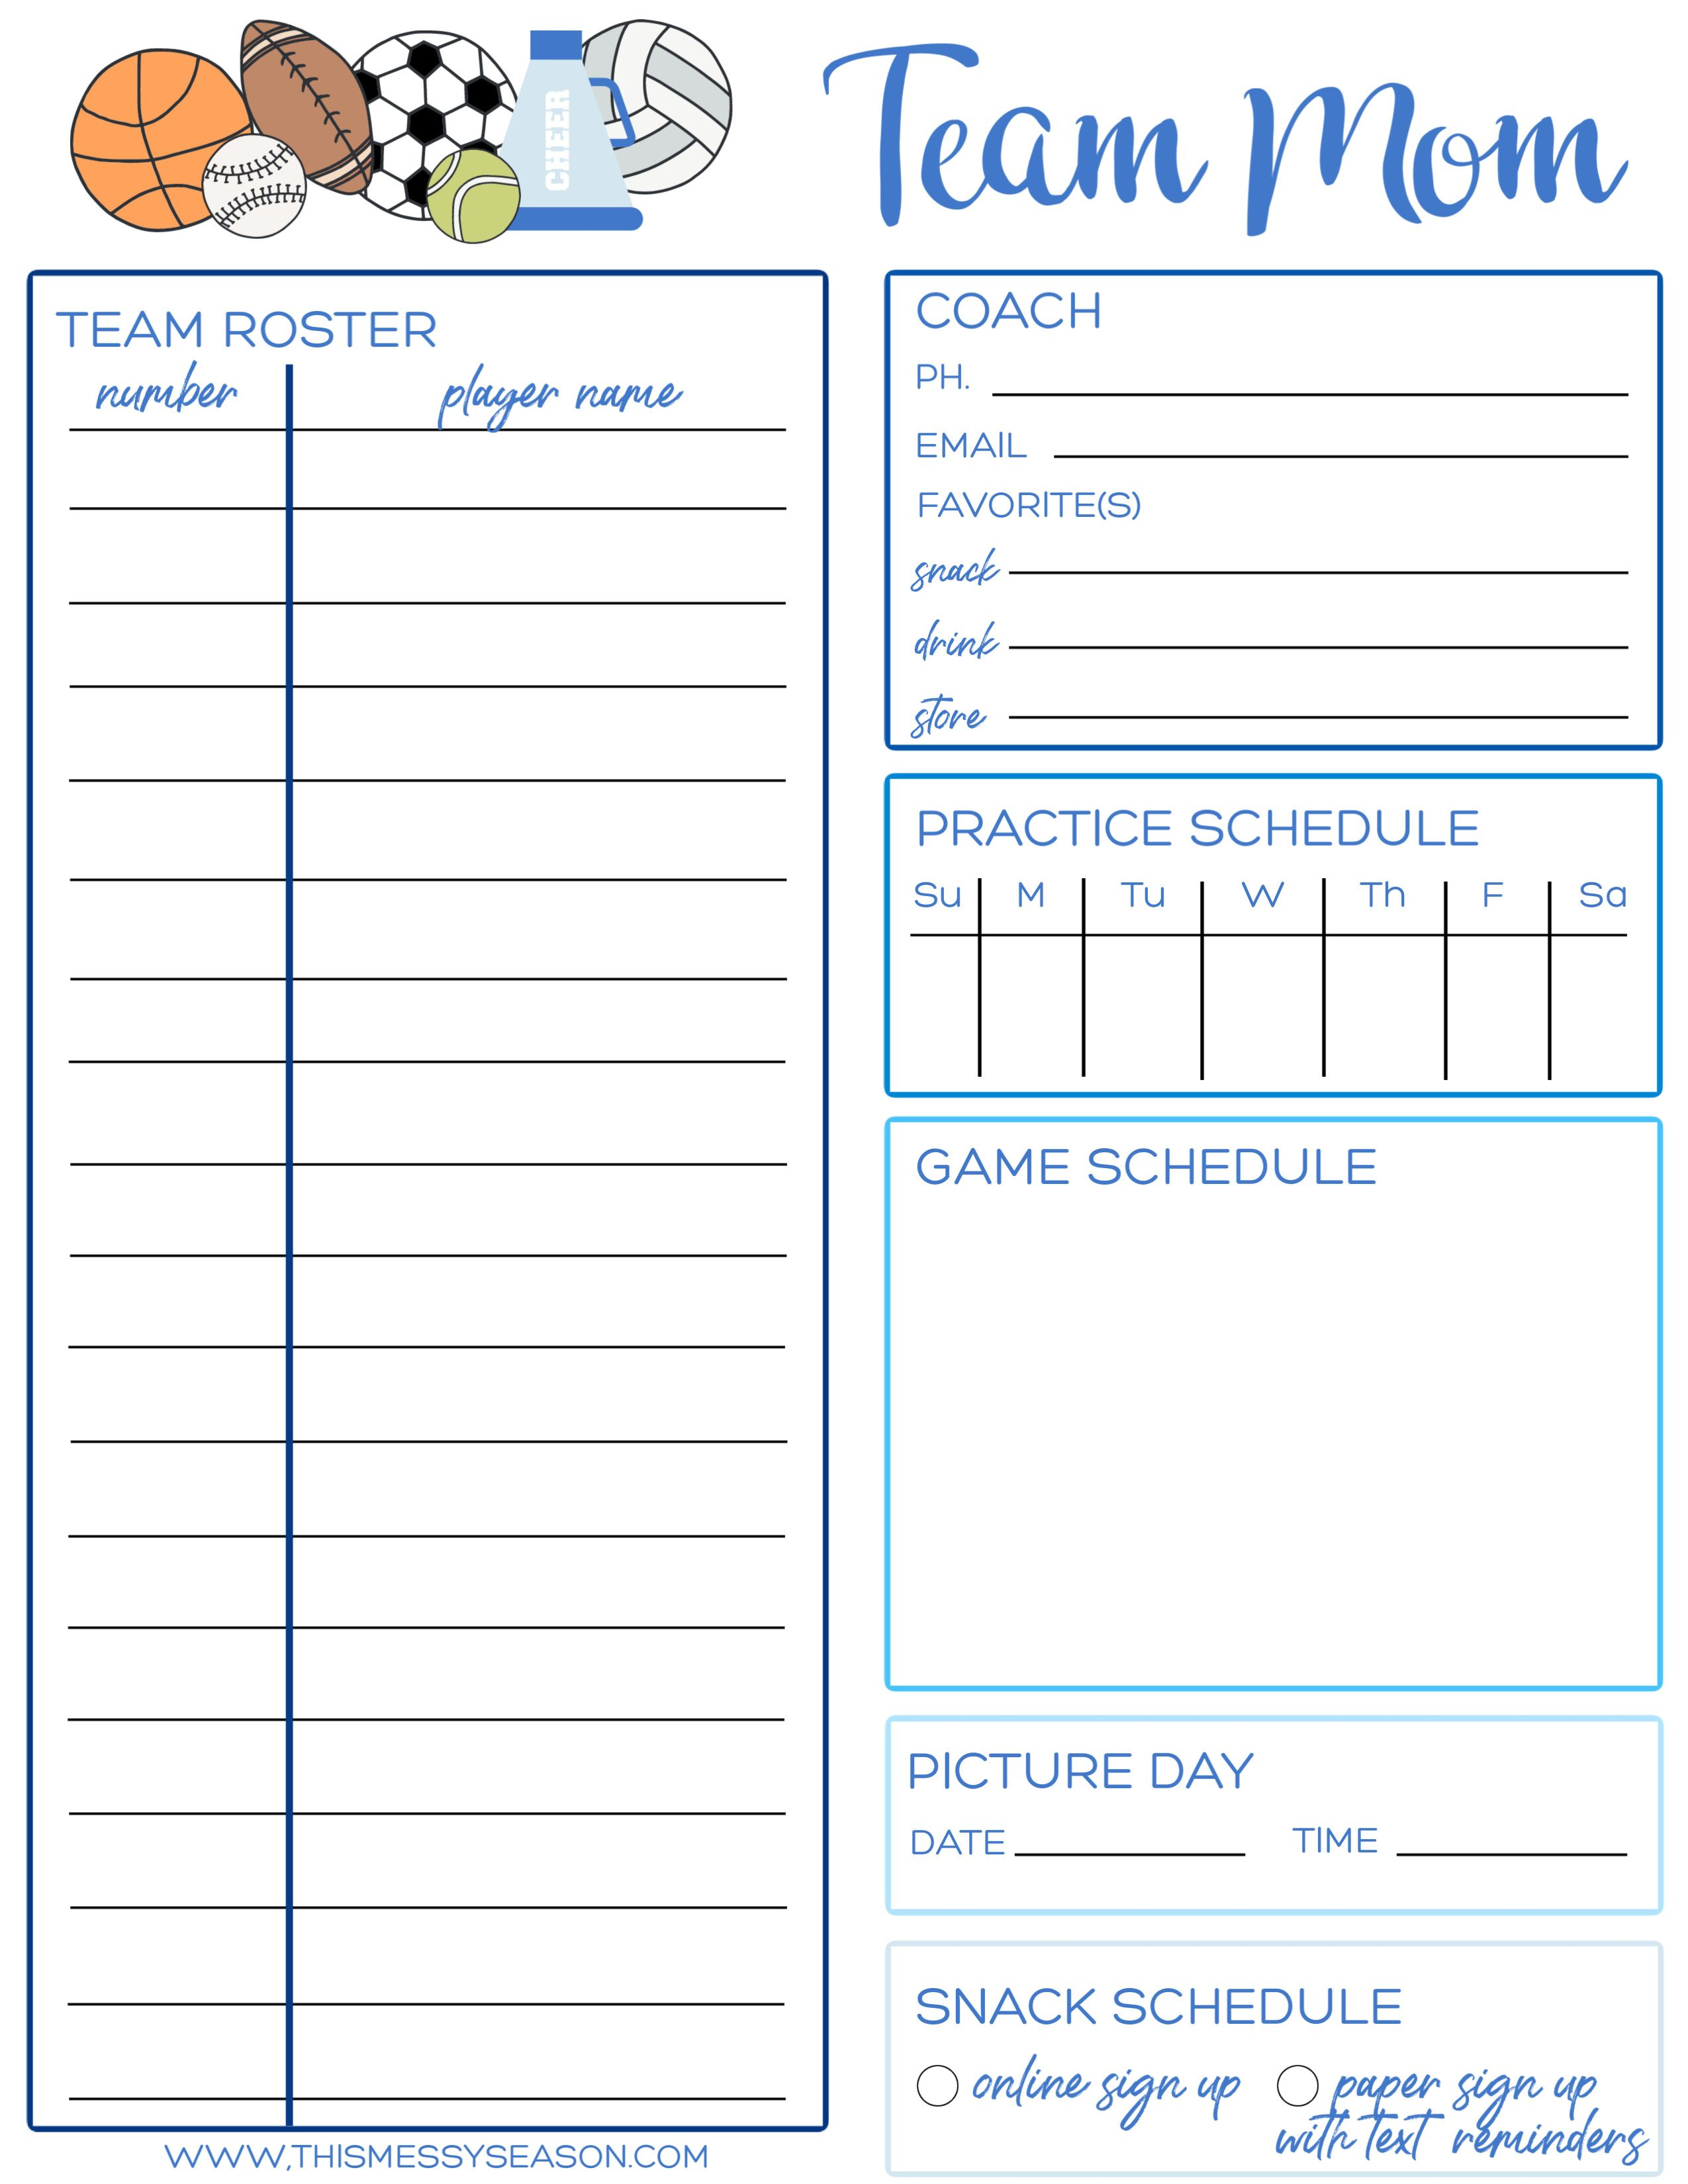 Tips For Your First Season As A Sports Mama Free Printable Team Mom Printable In 2020 Team Mom Mom Printable Sports Mom